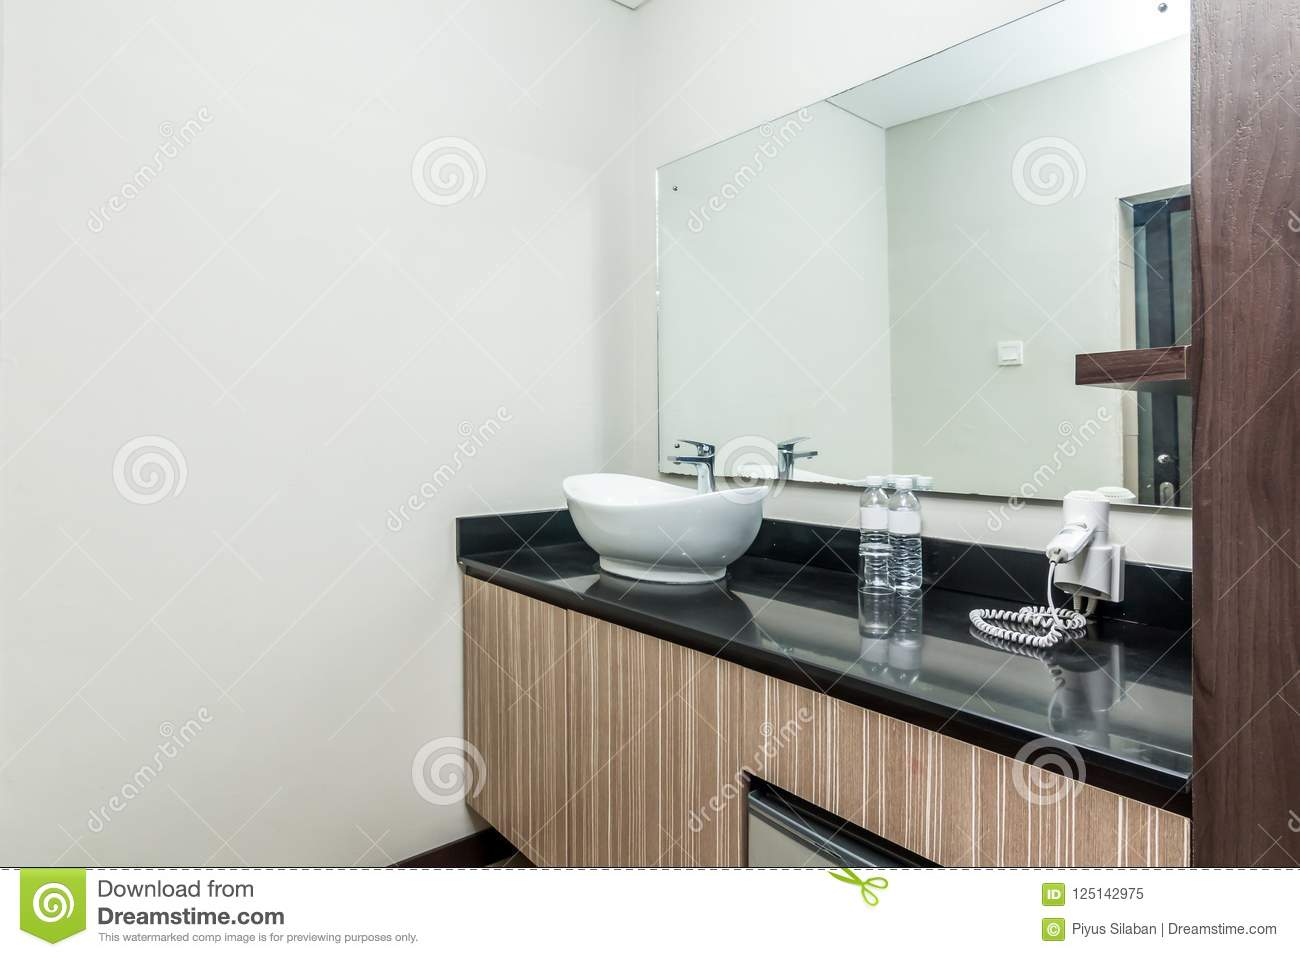 Cheap And Small Hotel Bathroom Stock Image - Image of toilet ...